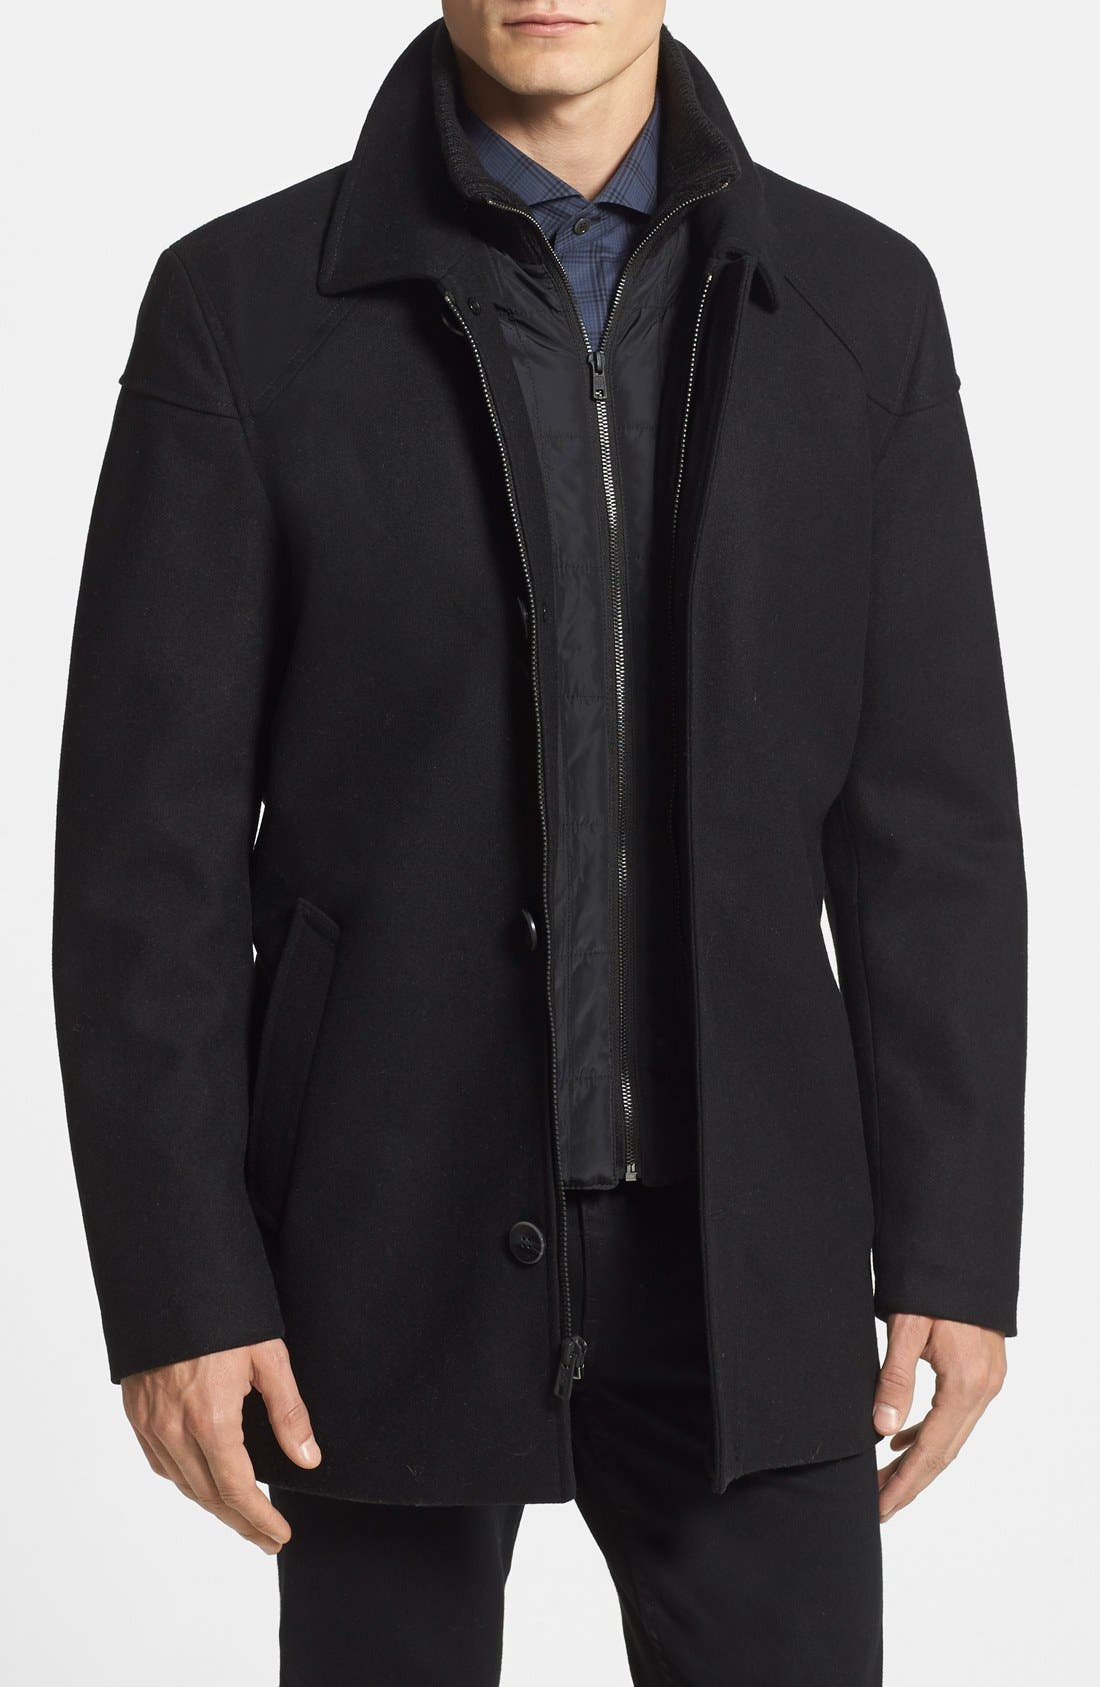 Main Image - Vince Camuto Melton Car Coat with Removable Bib